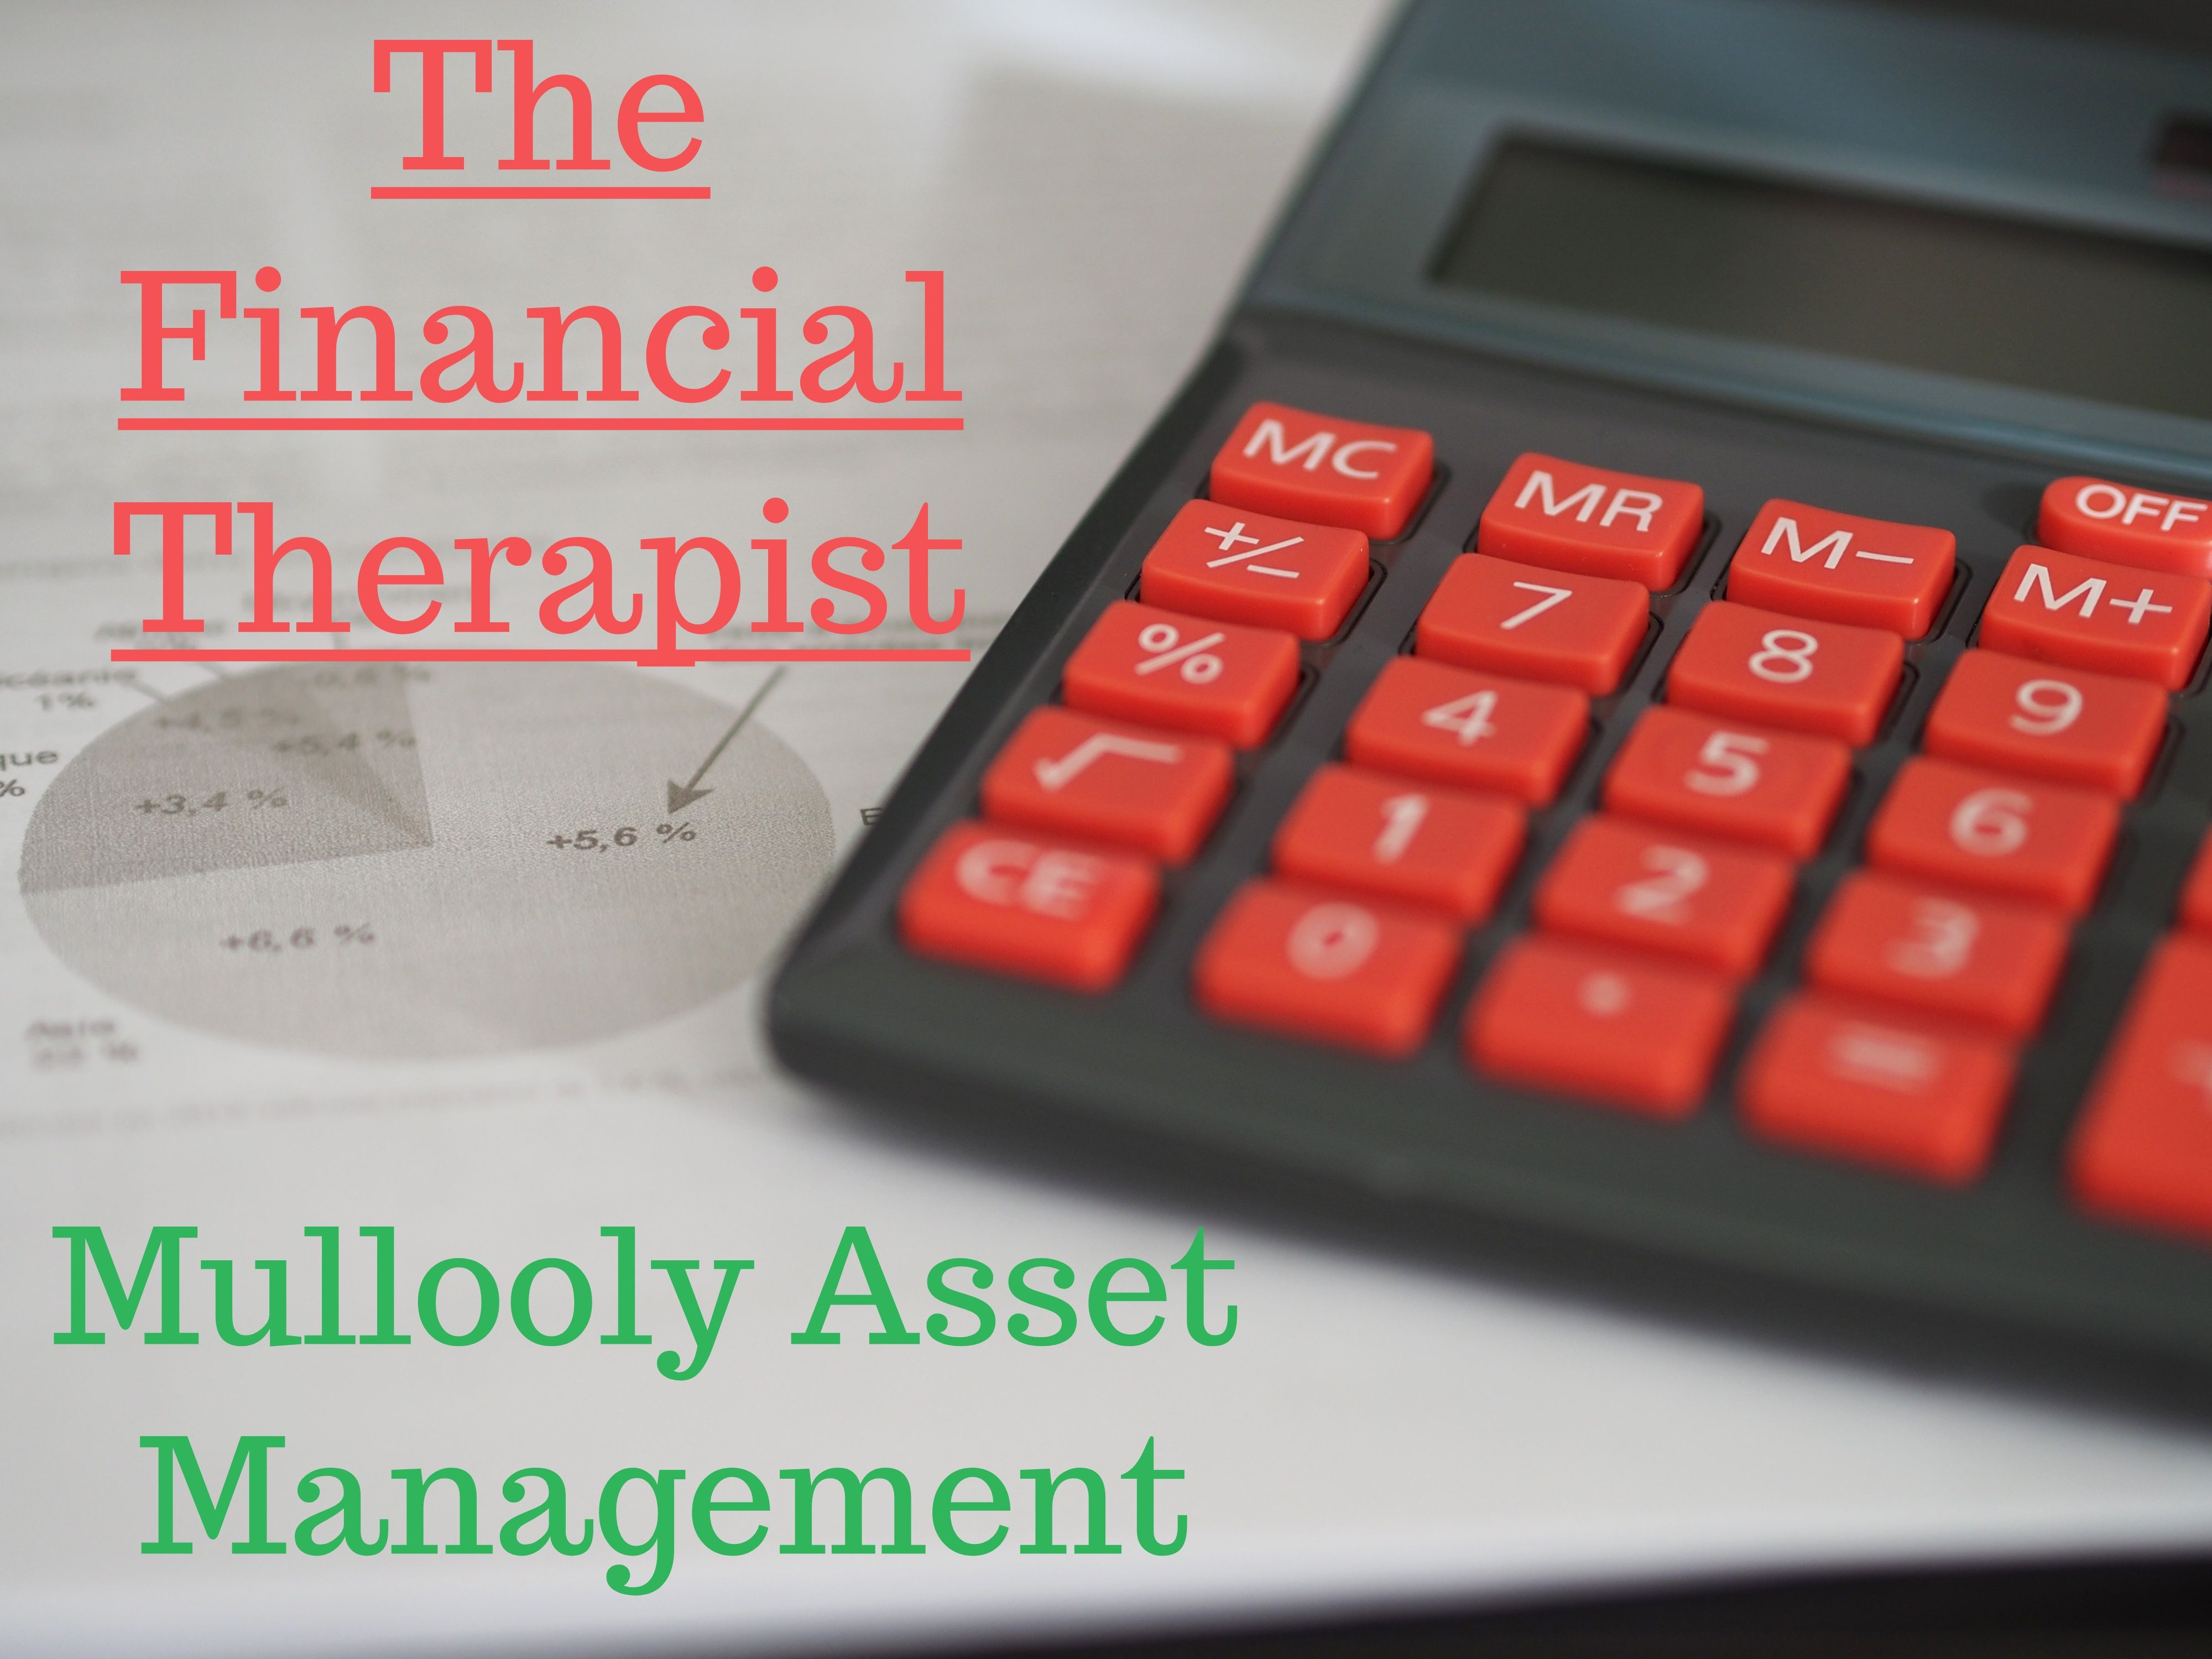 The Financial Therapist